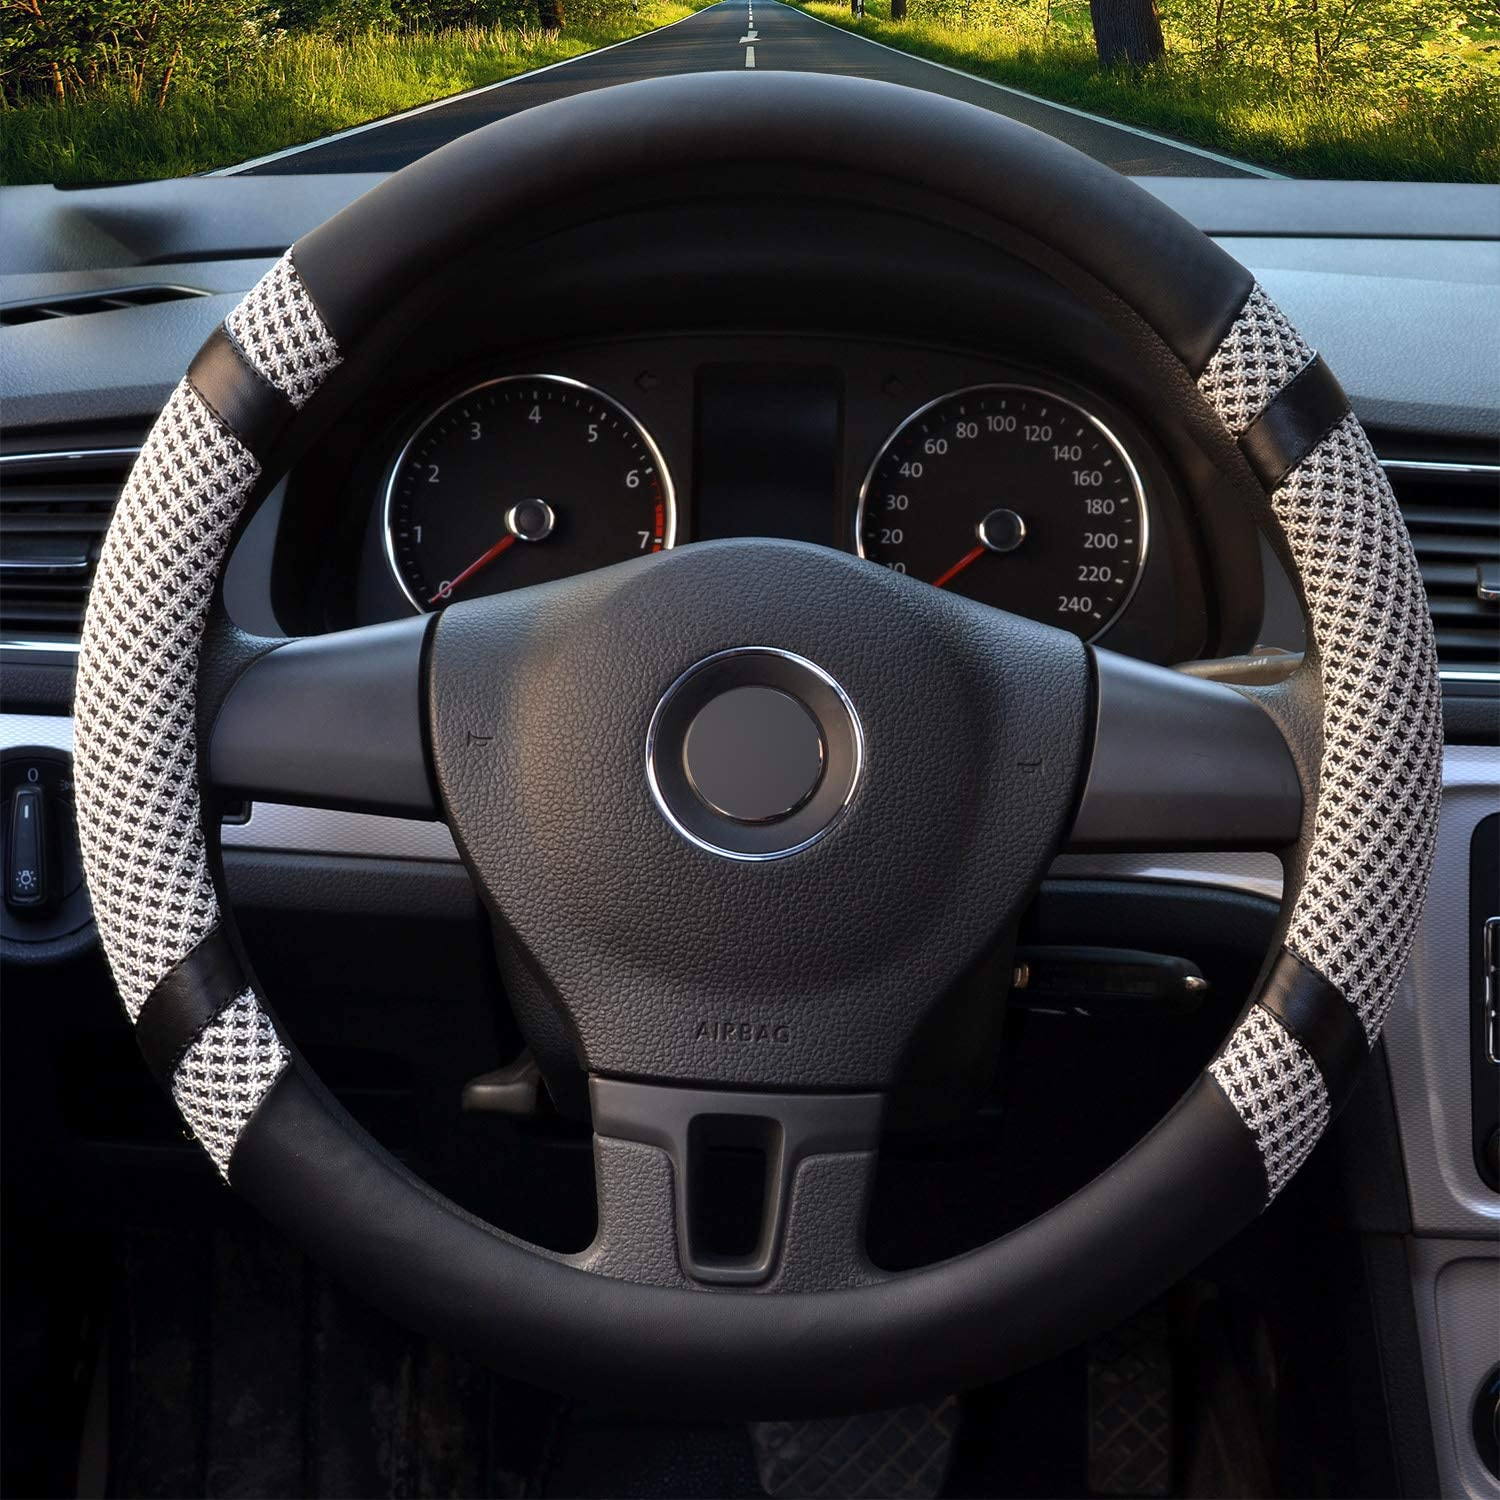 ToBeQueen 16 Inch Steering Wheel Cover Leather Truck Car Steering Wheel Cover for Women and Men,Gray